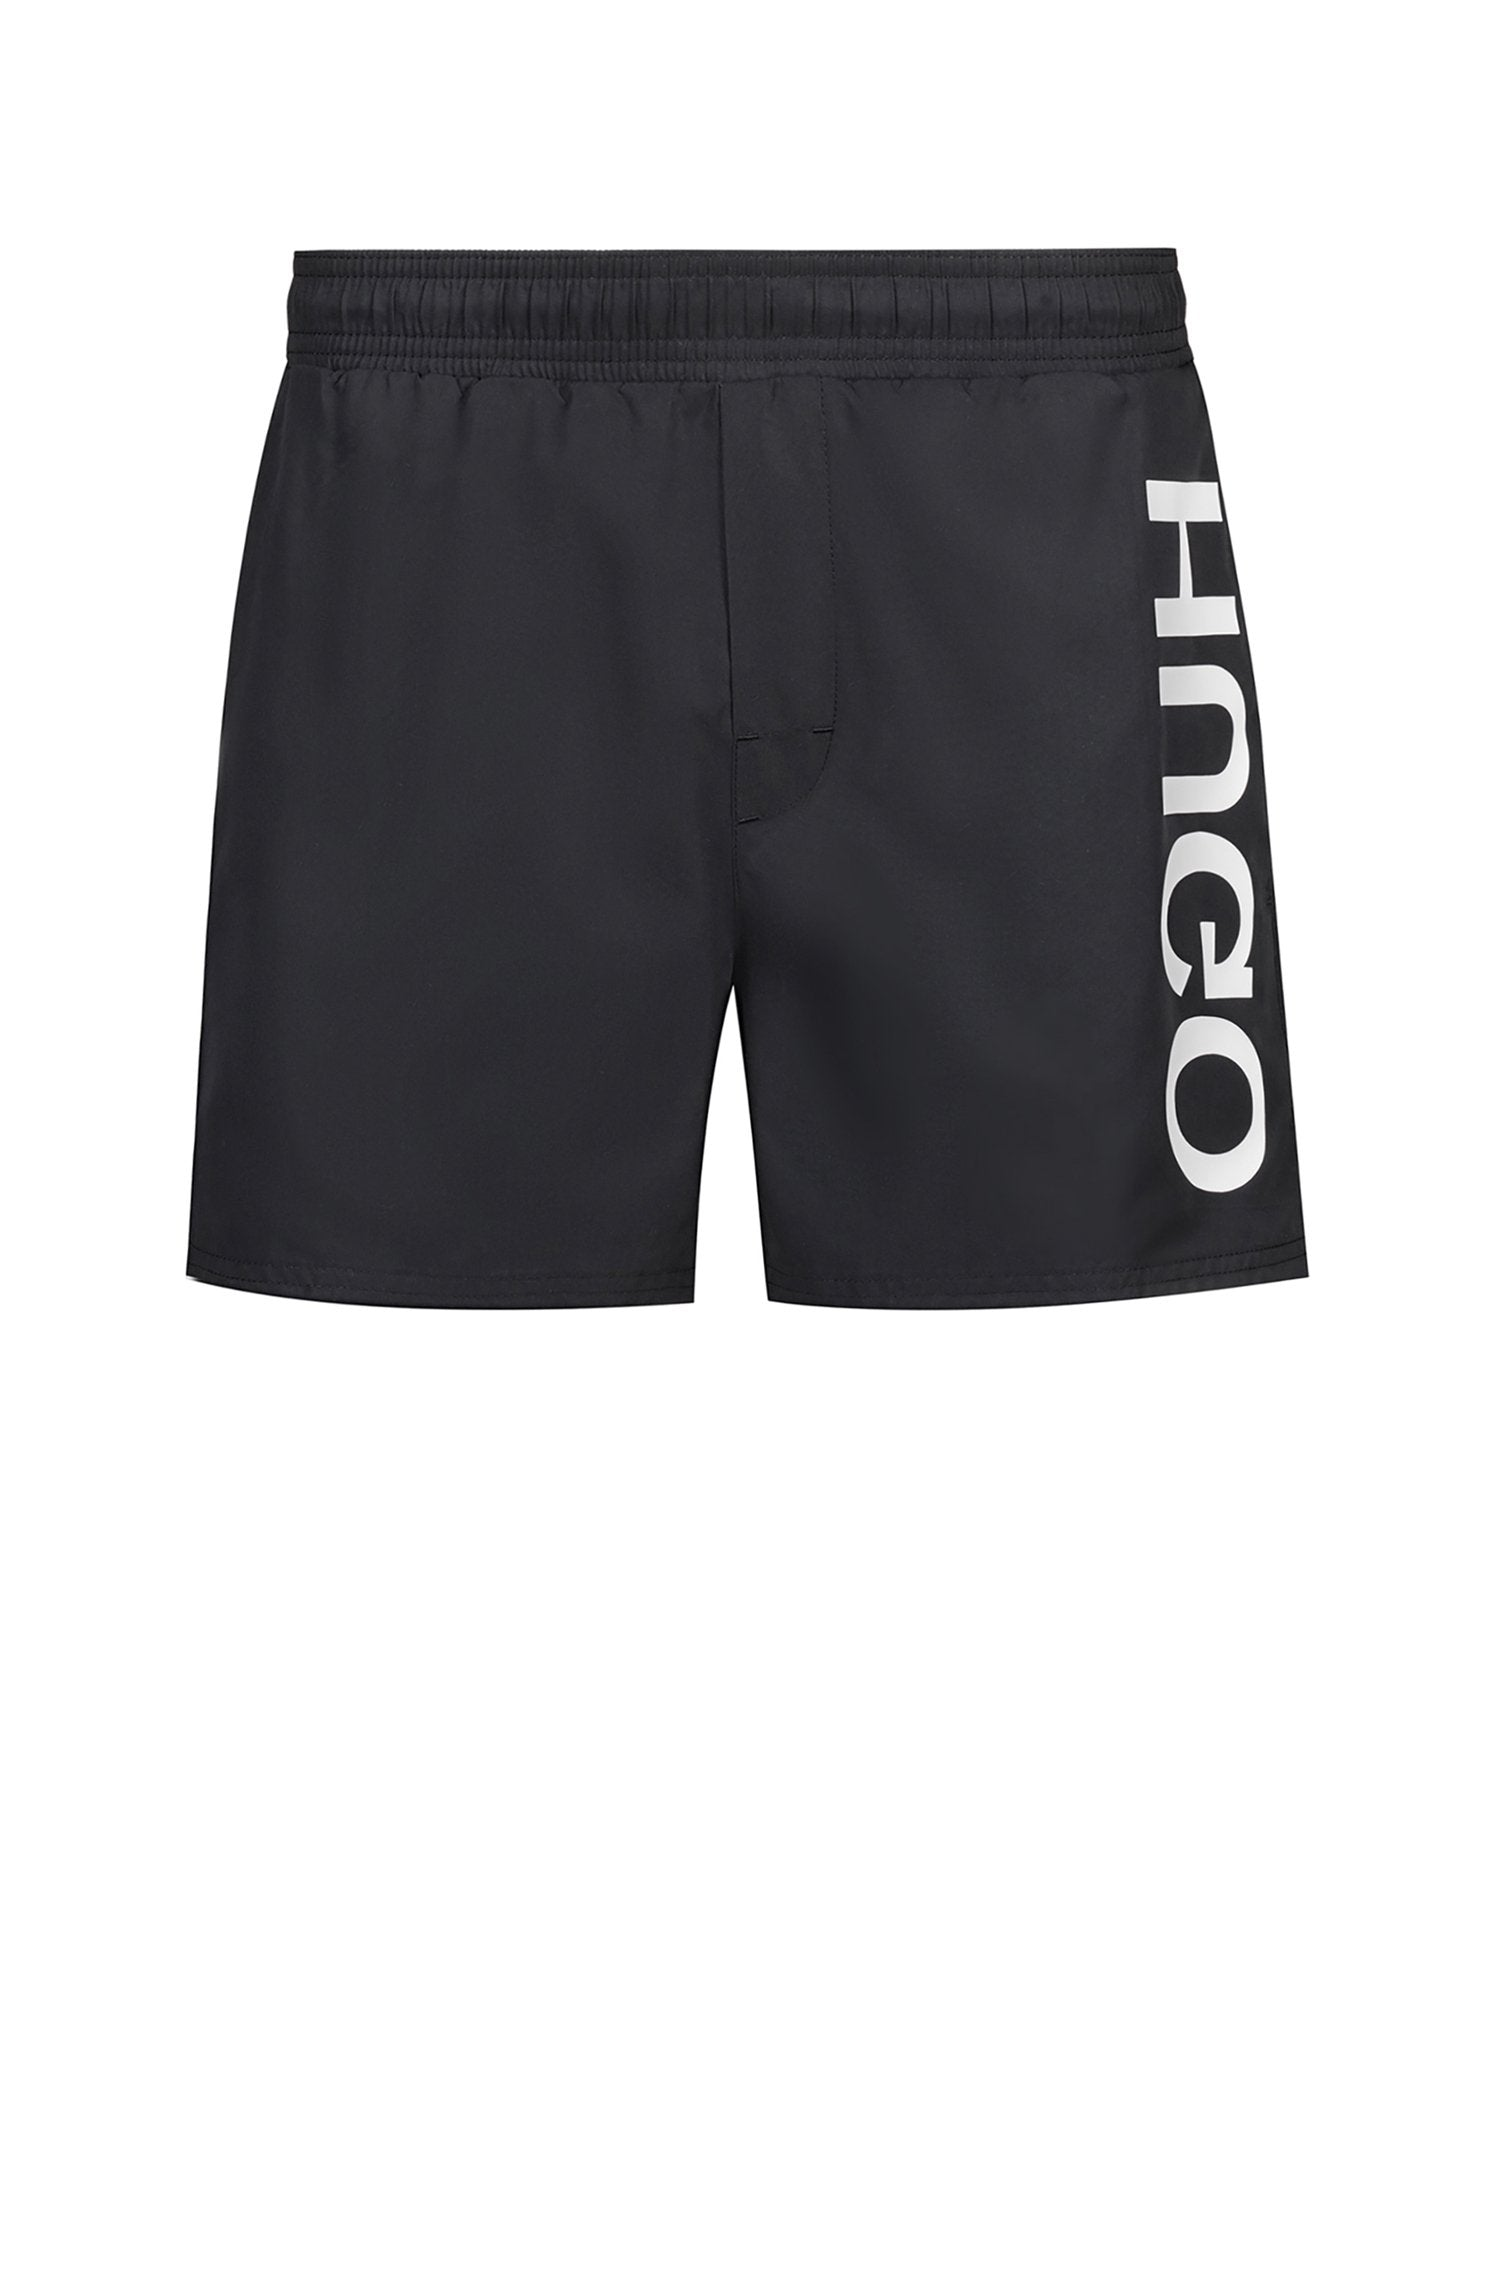 HUGO BOSS SABA SWIM SHORTS 50409687-001